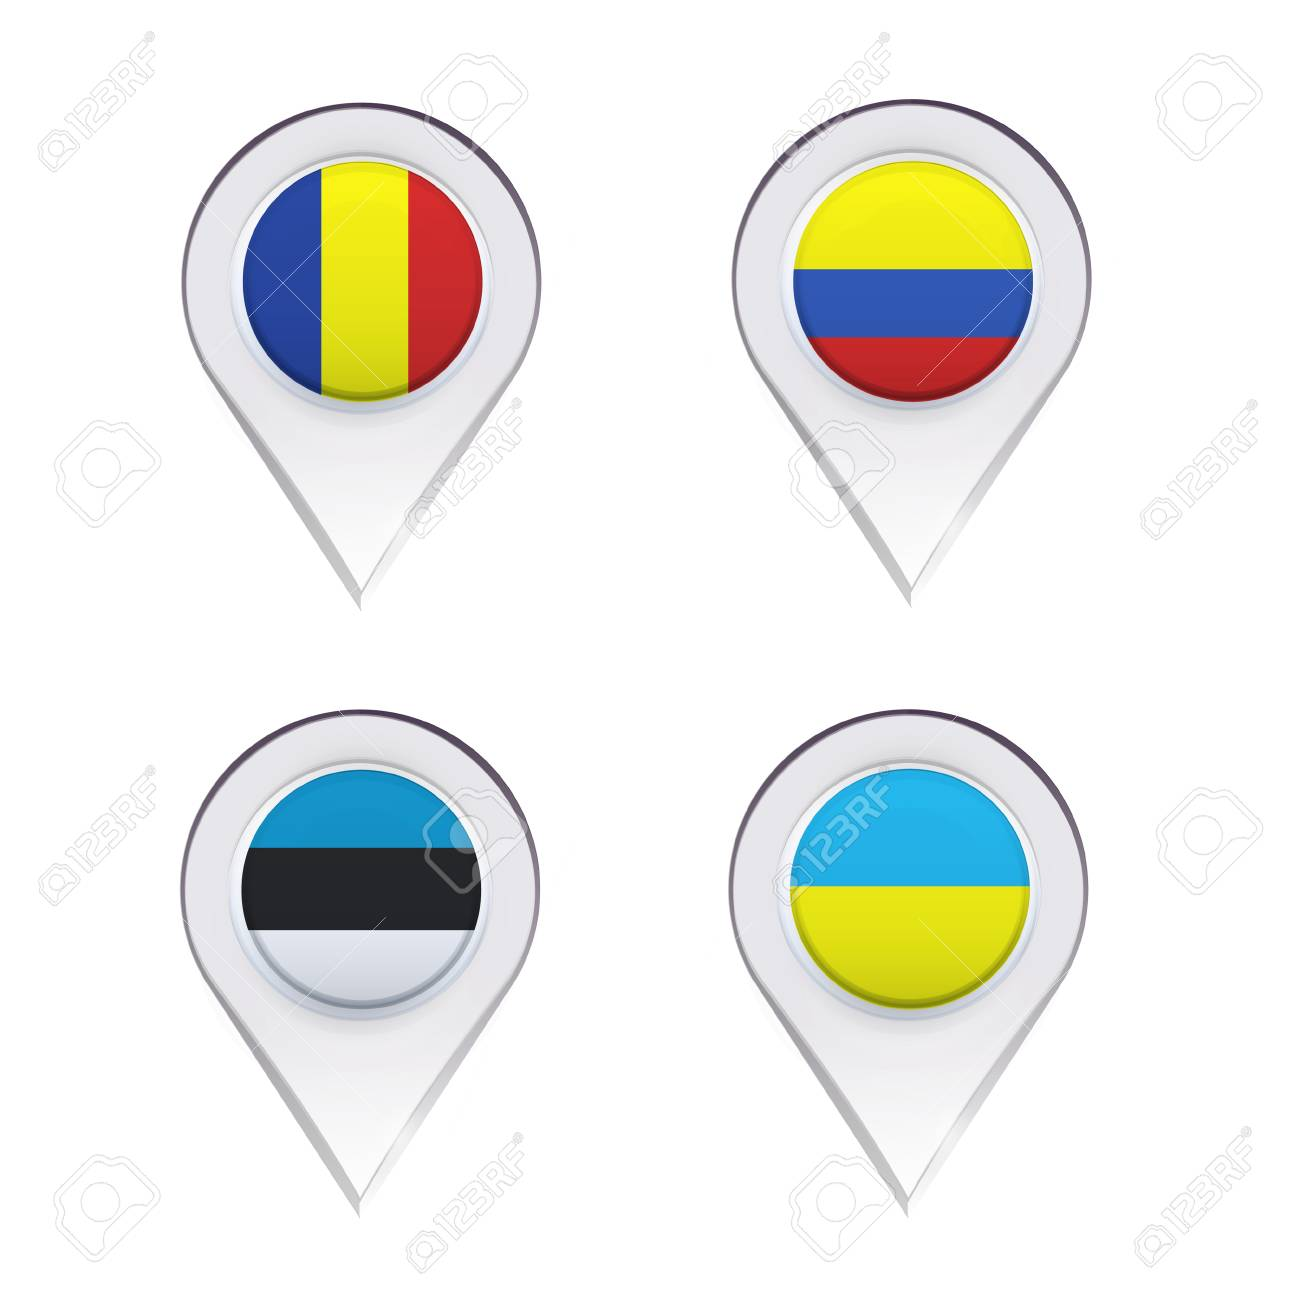 Flags inside pointers over white background. Vector design. Stock Vector - 24119683